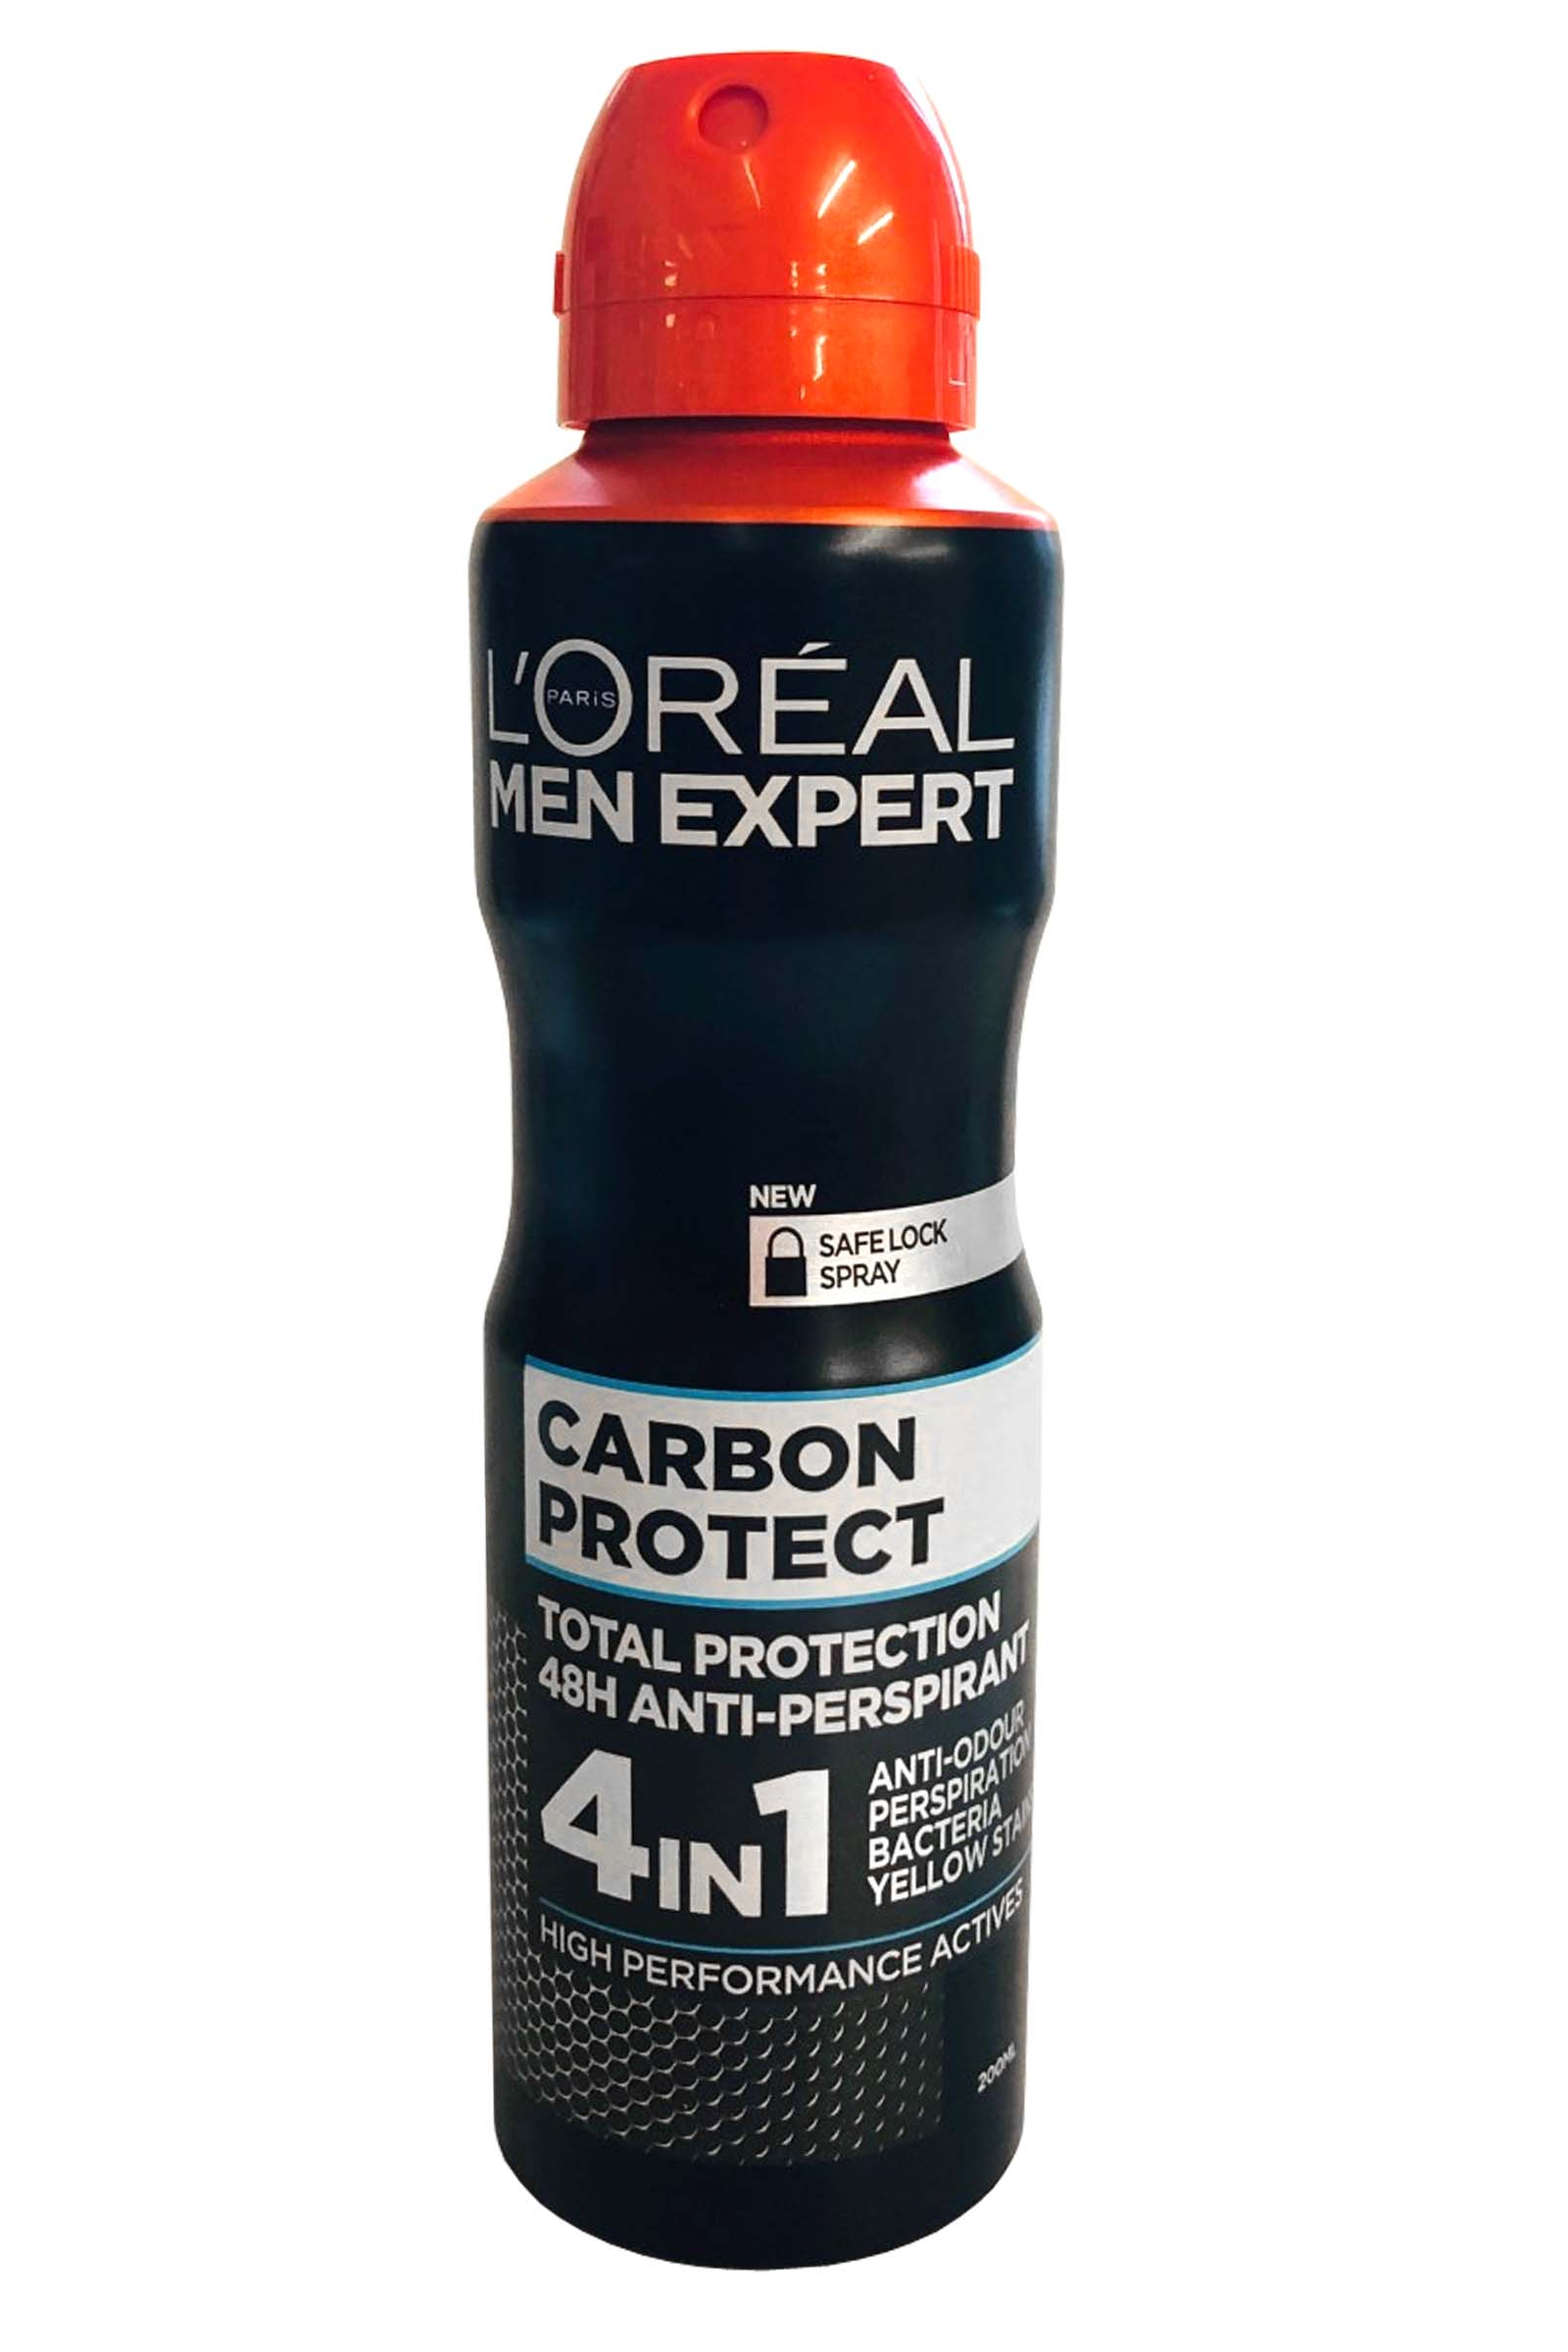 L Oreal Men Expert by L'Oreal Anti Odour 48Hr Anti Perspirant 200ml Carbon Protect